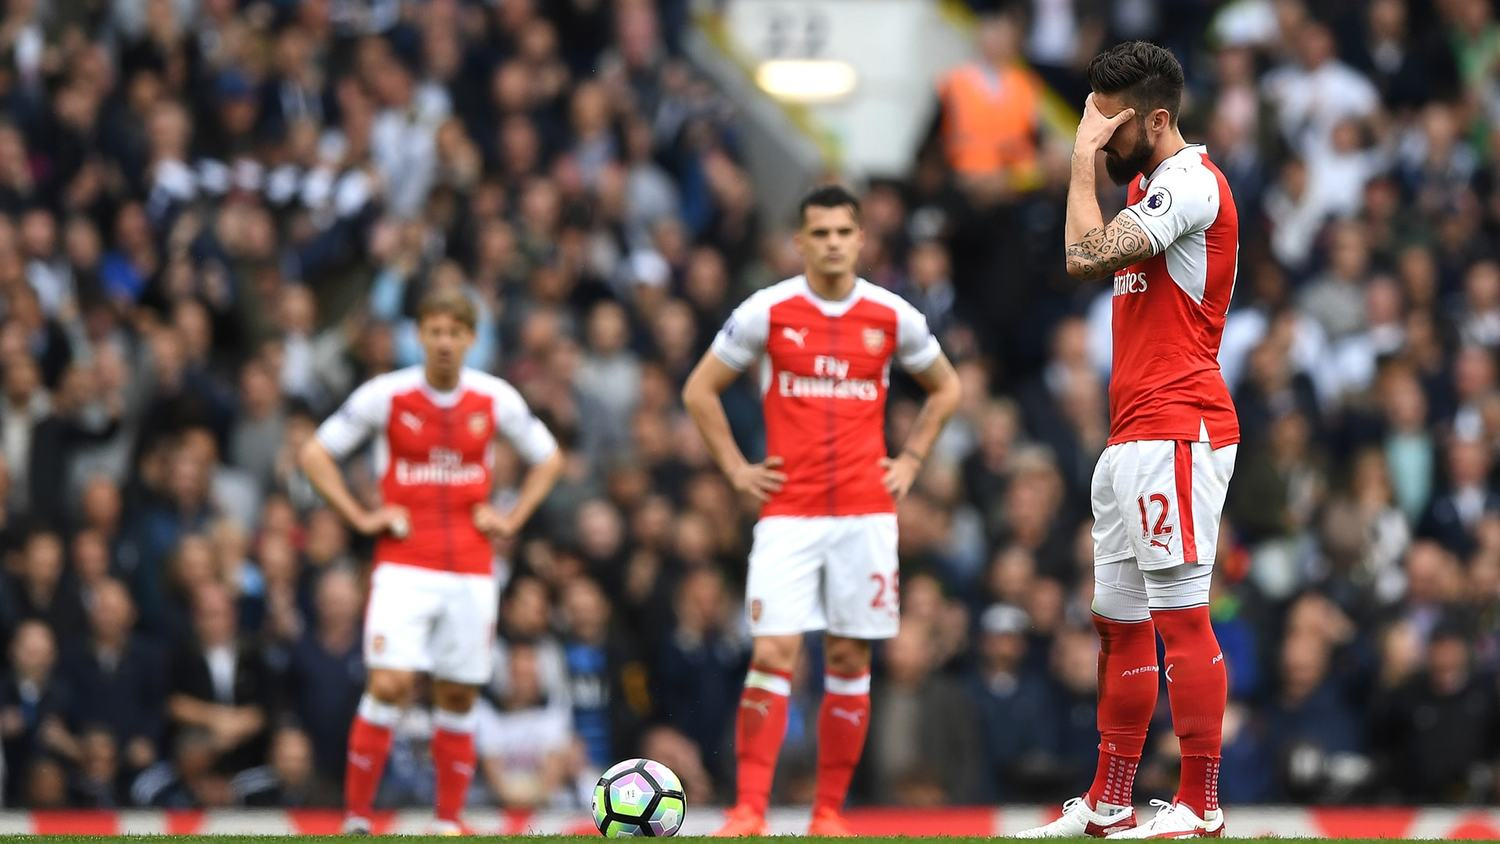 There's Always Next Year, Arsenal | Case Of The Mondays